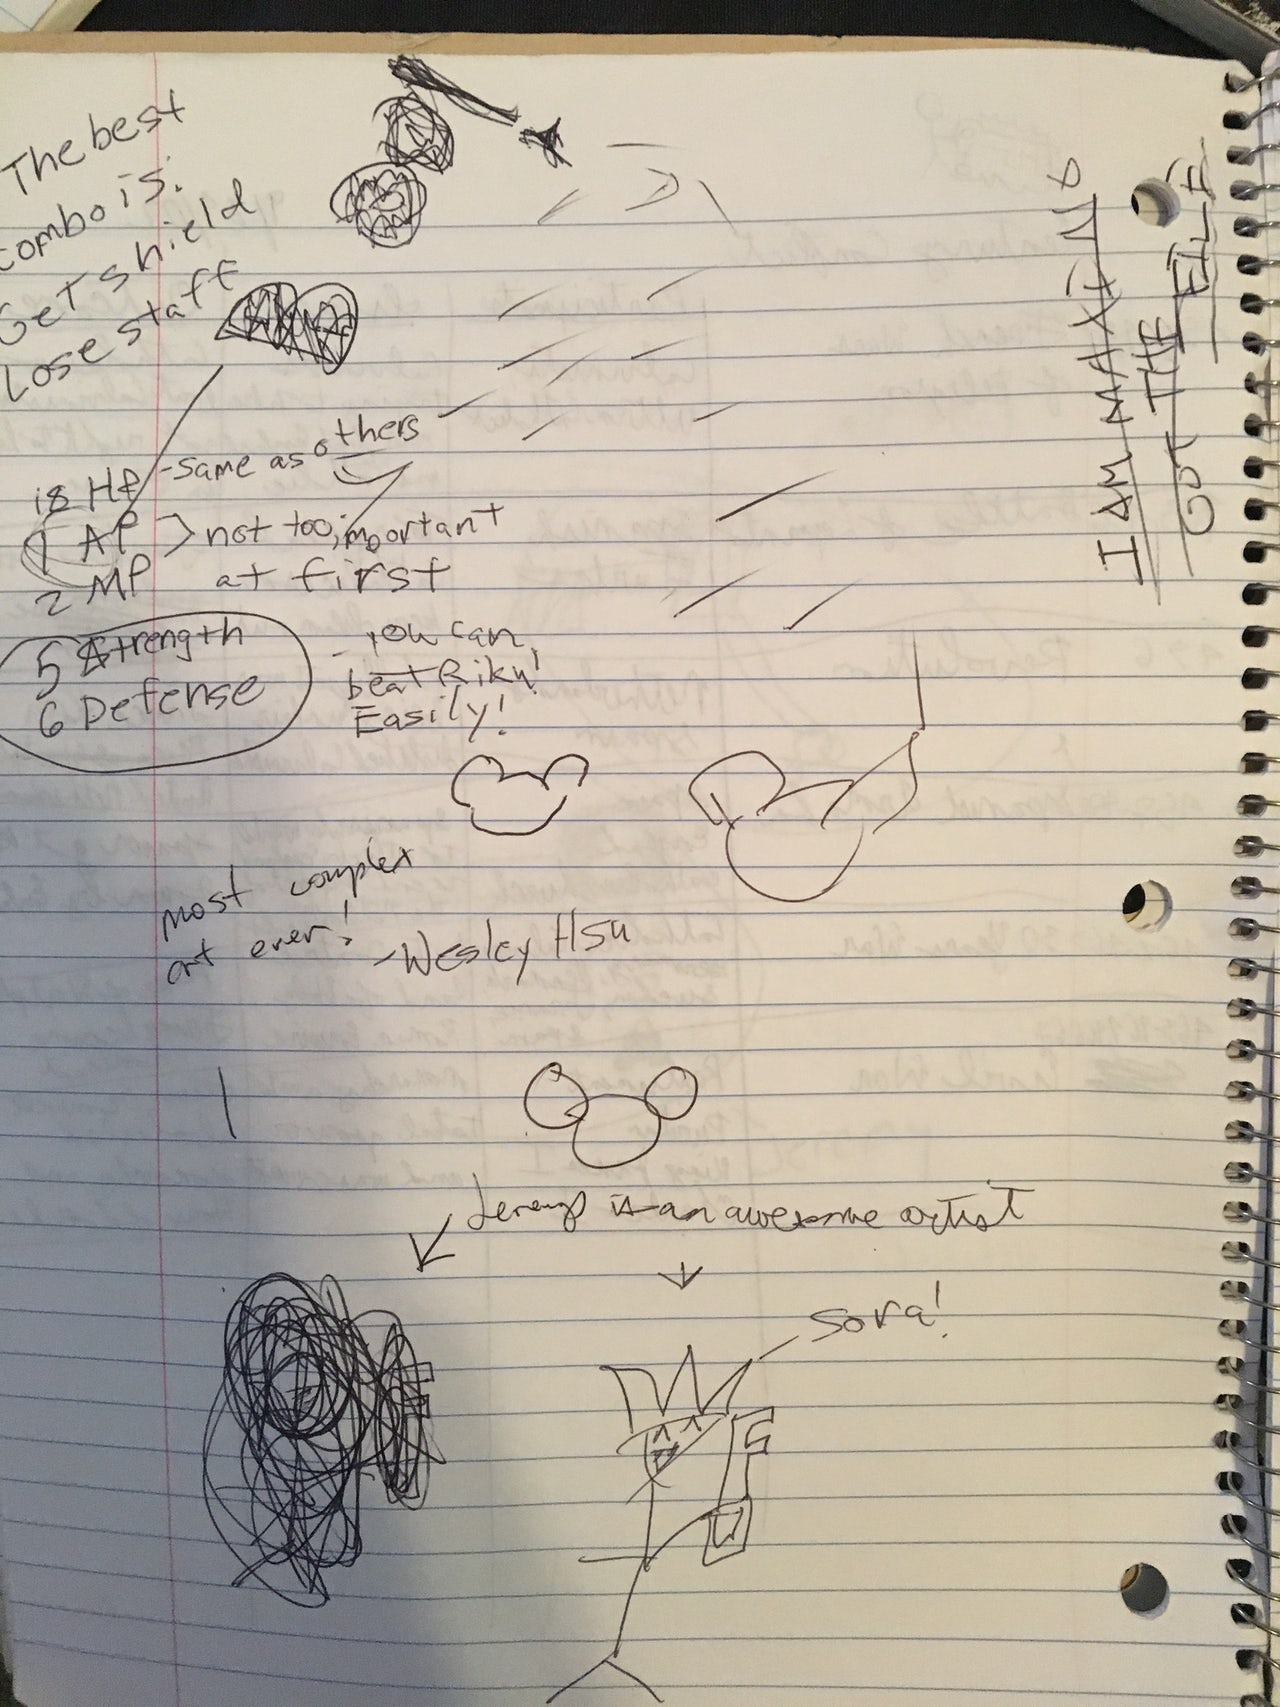 Amateur 'Kingdom Hearts' strategy guide in math notebook.